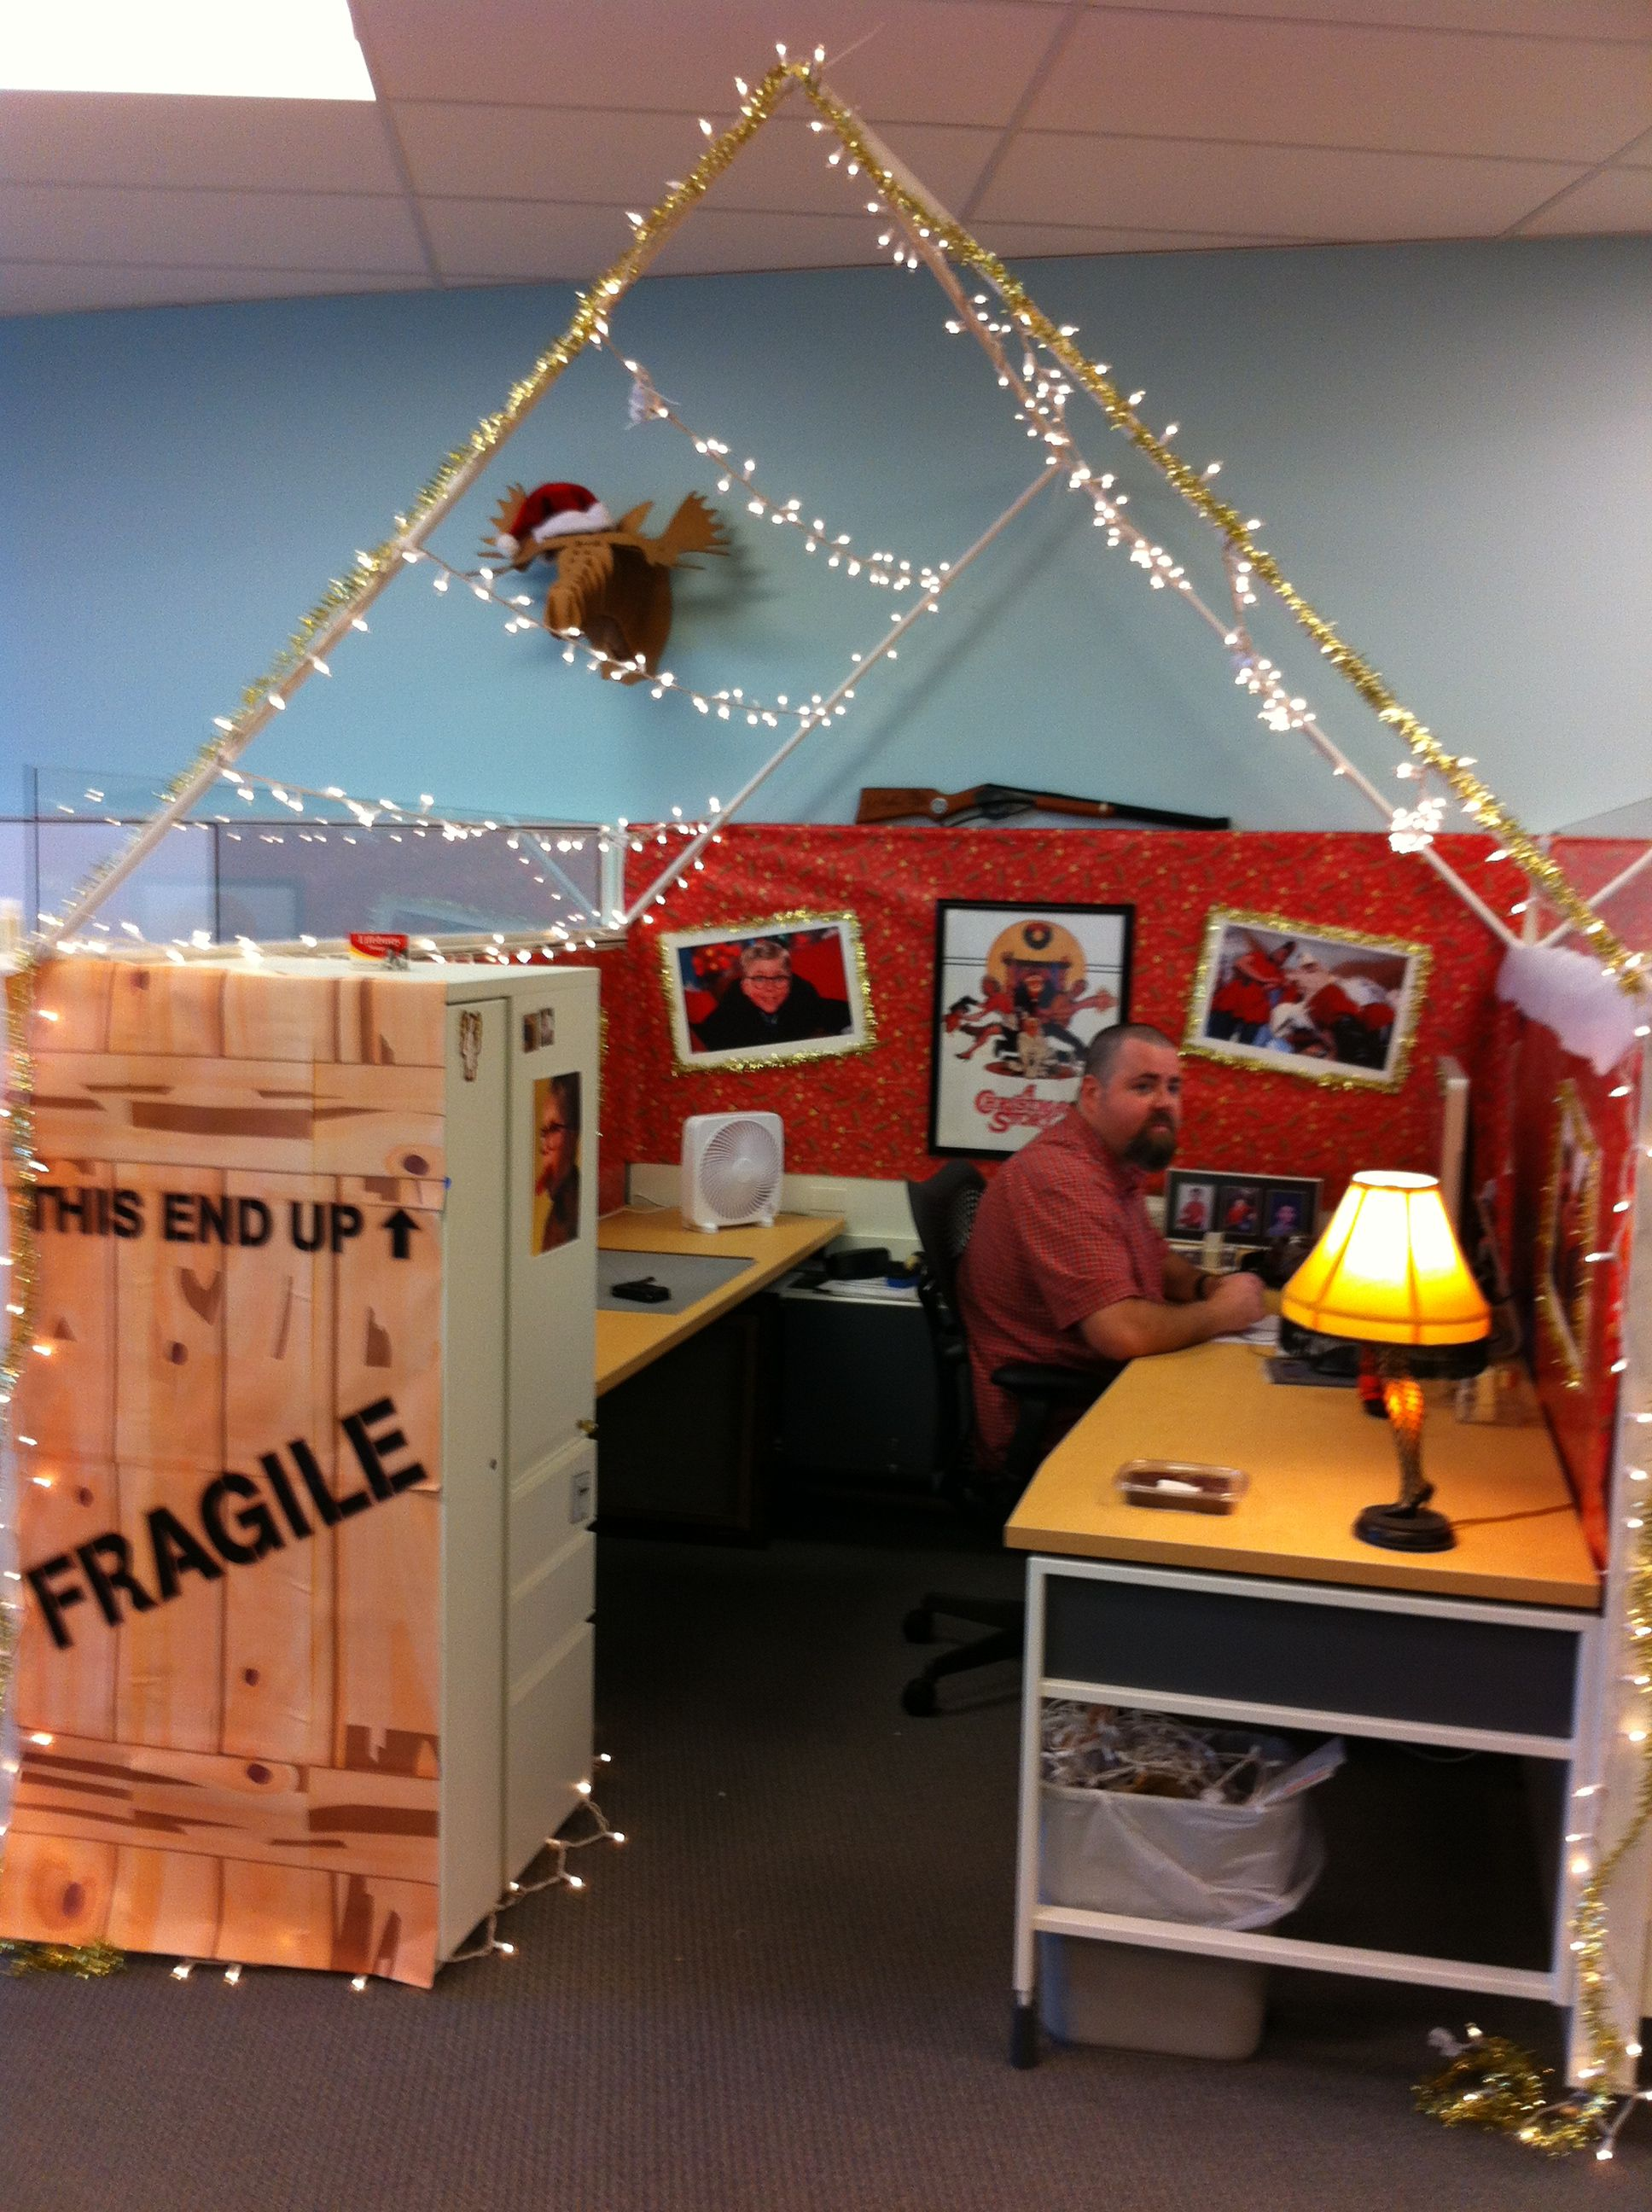 during our holiday cube decorating contest the winner decked his out in full a christmas story glory complete with a leg lamp - A Christmas Story Decorations